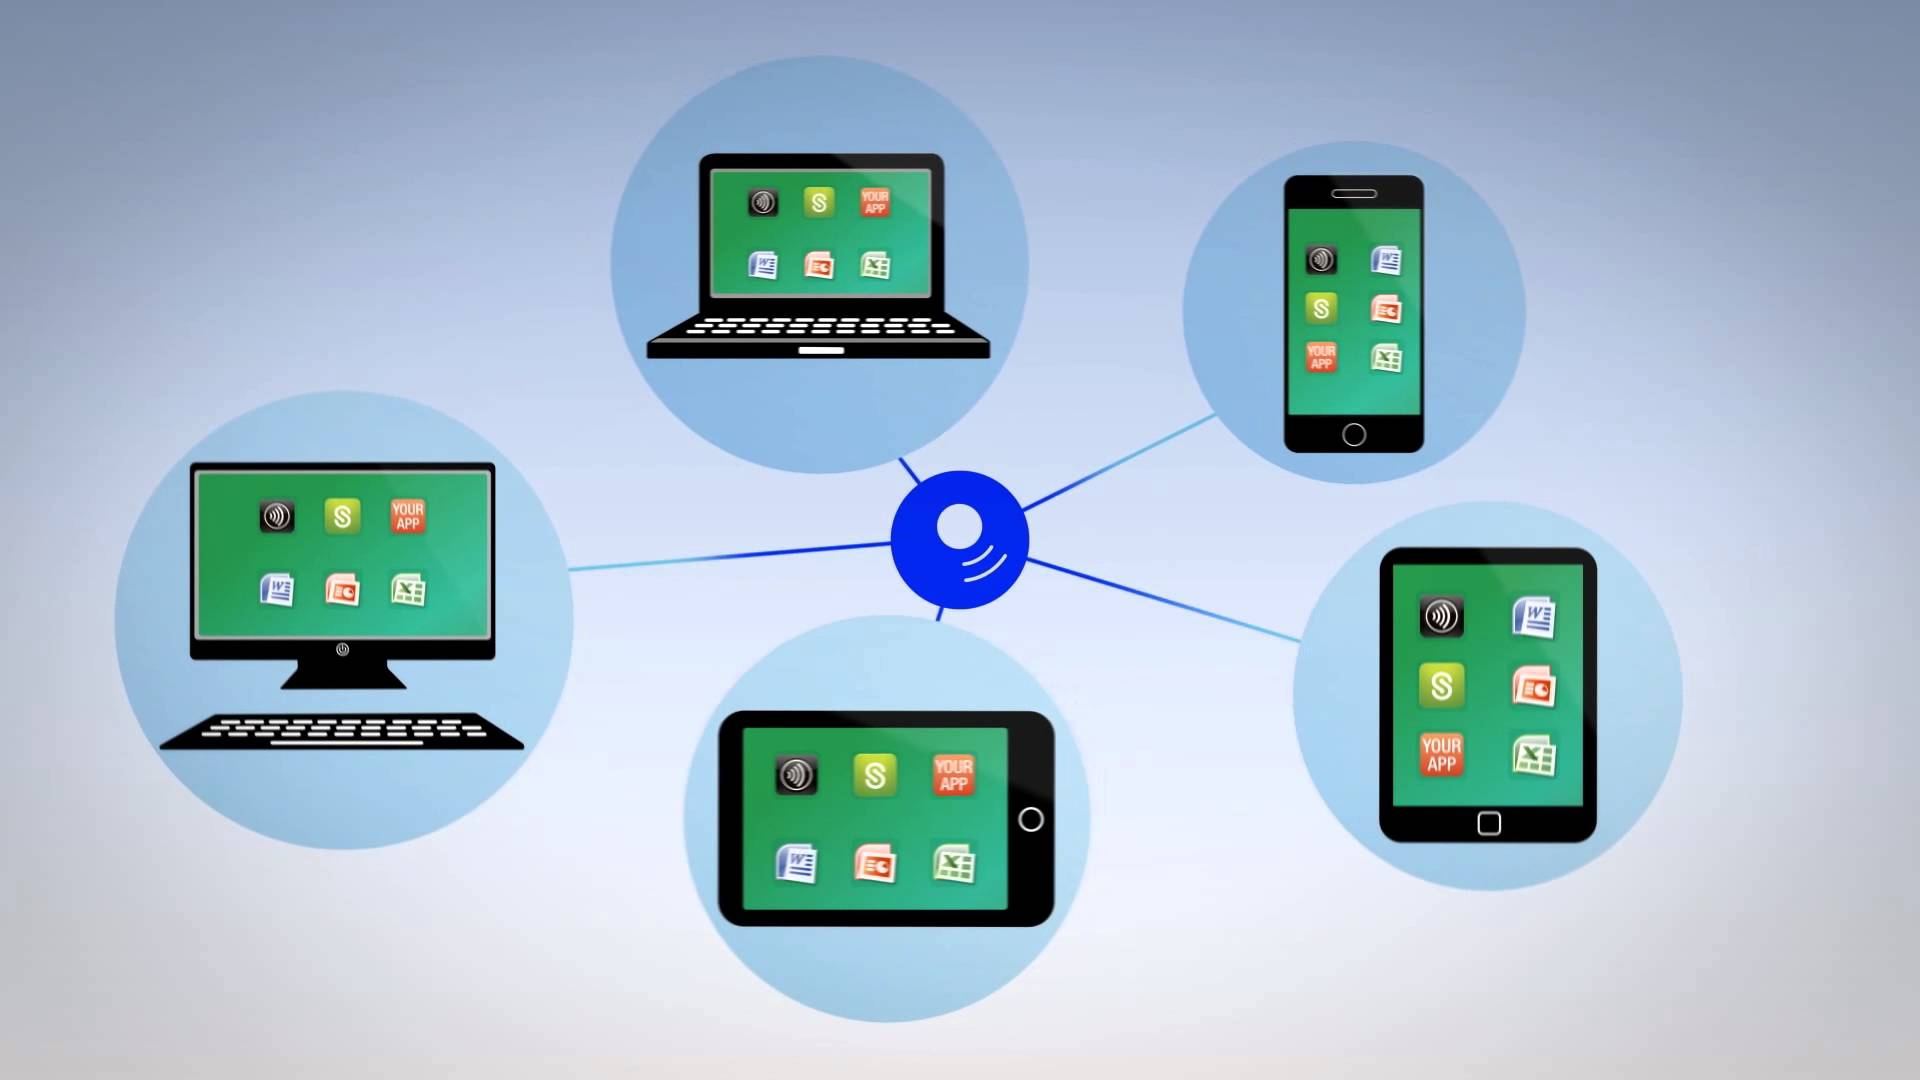 Hosted Desktop-as-a-Service - a great solution for small